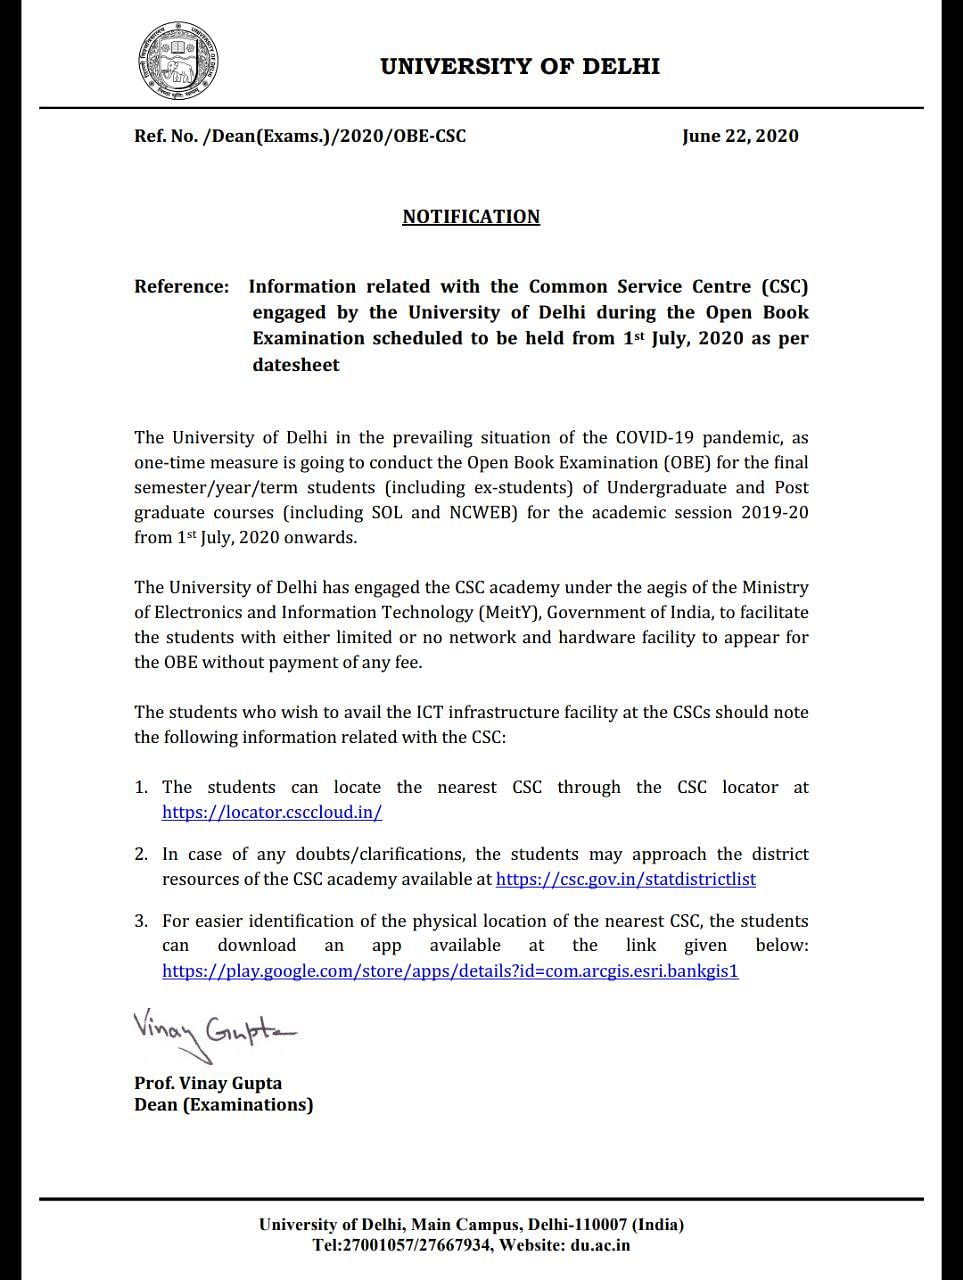 DU's first notification OBE Notification dated 22 June.